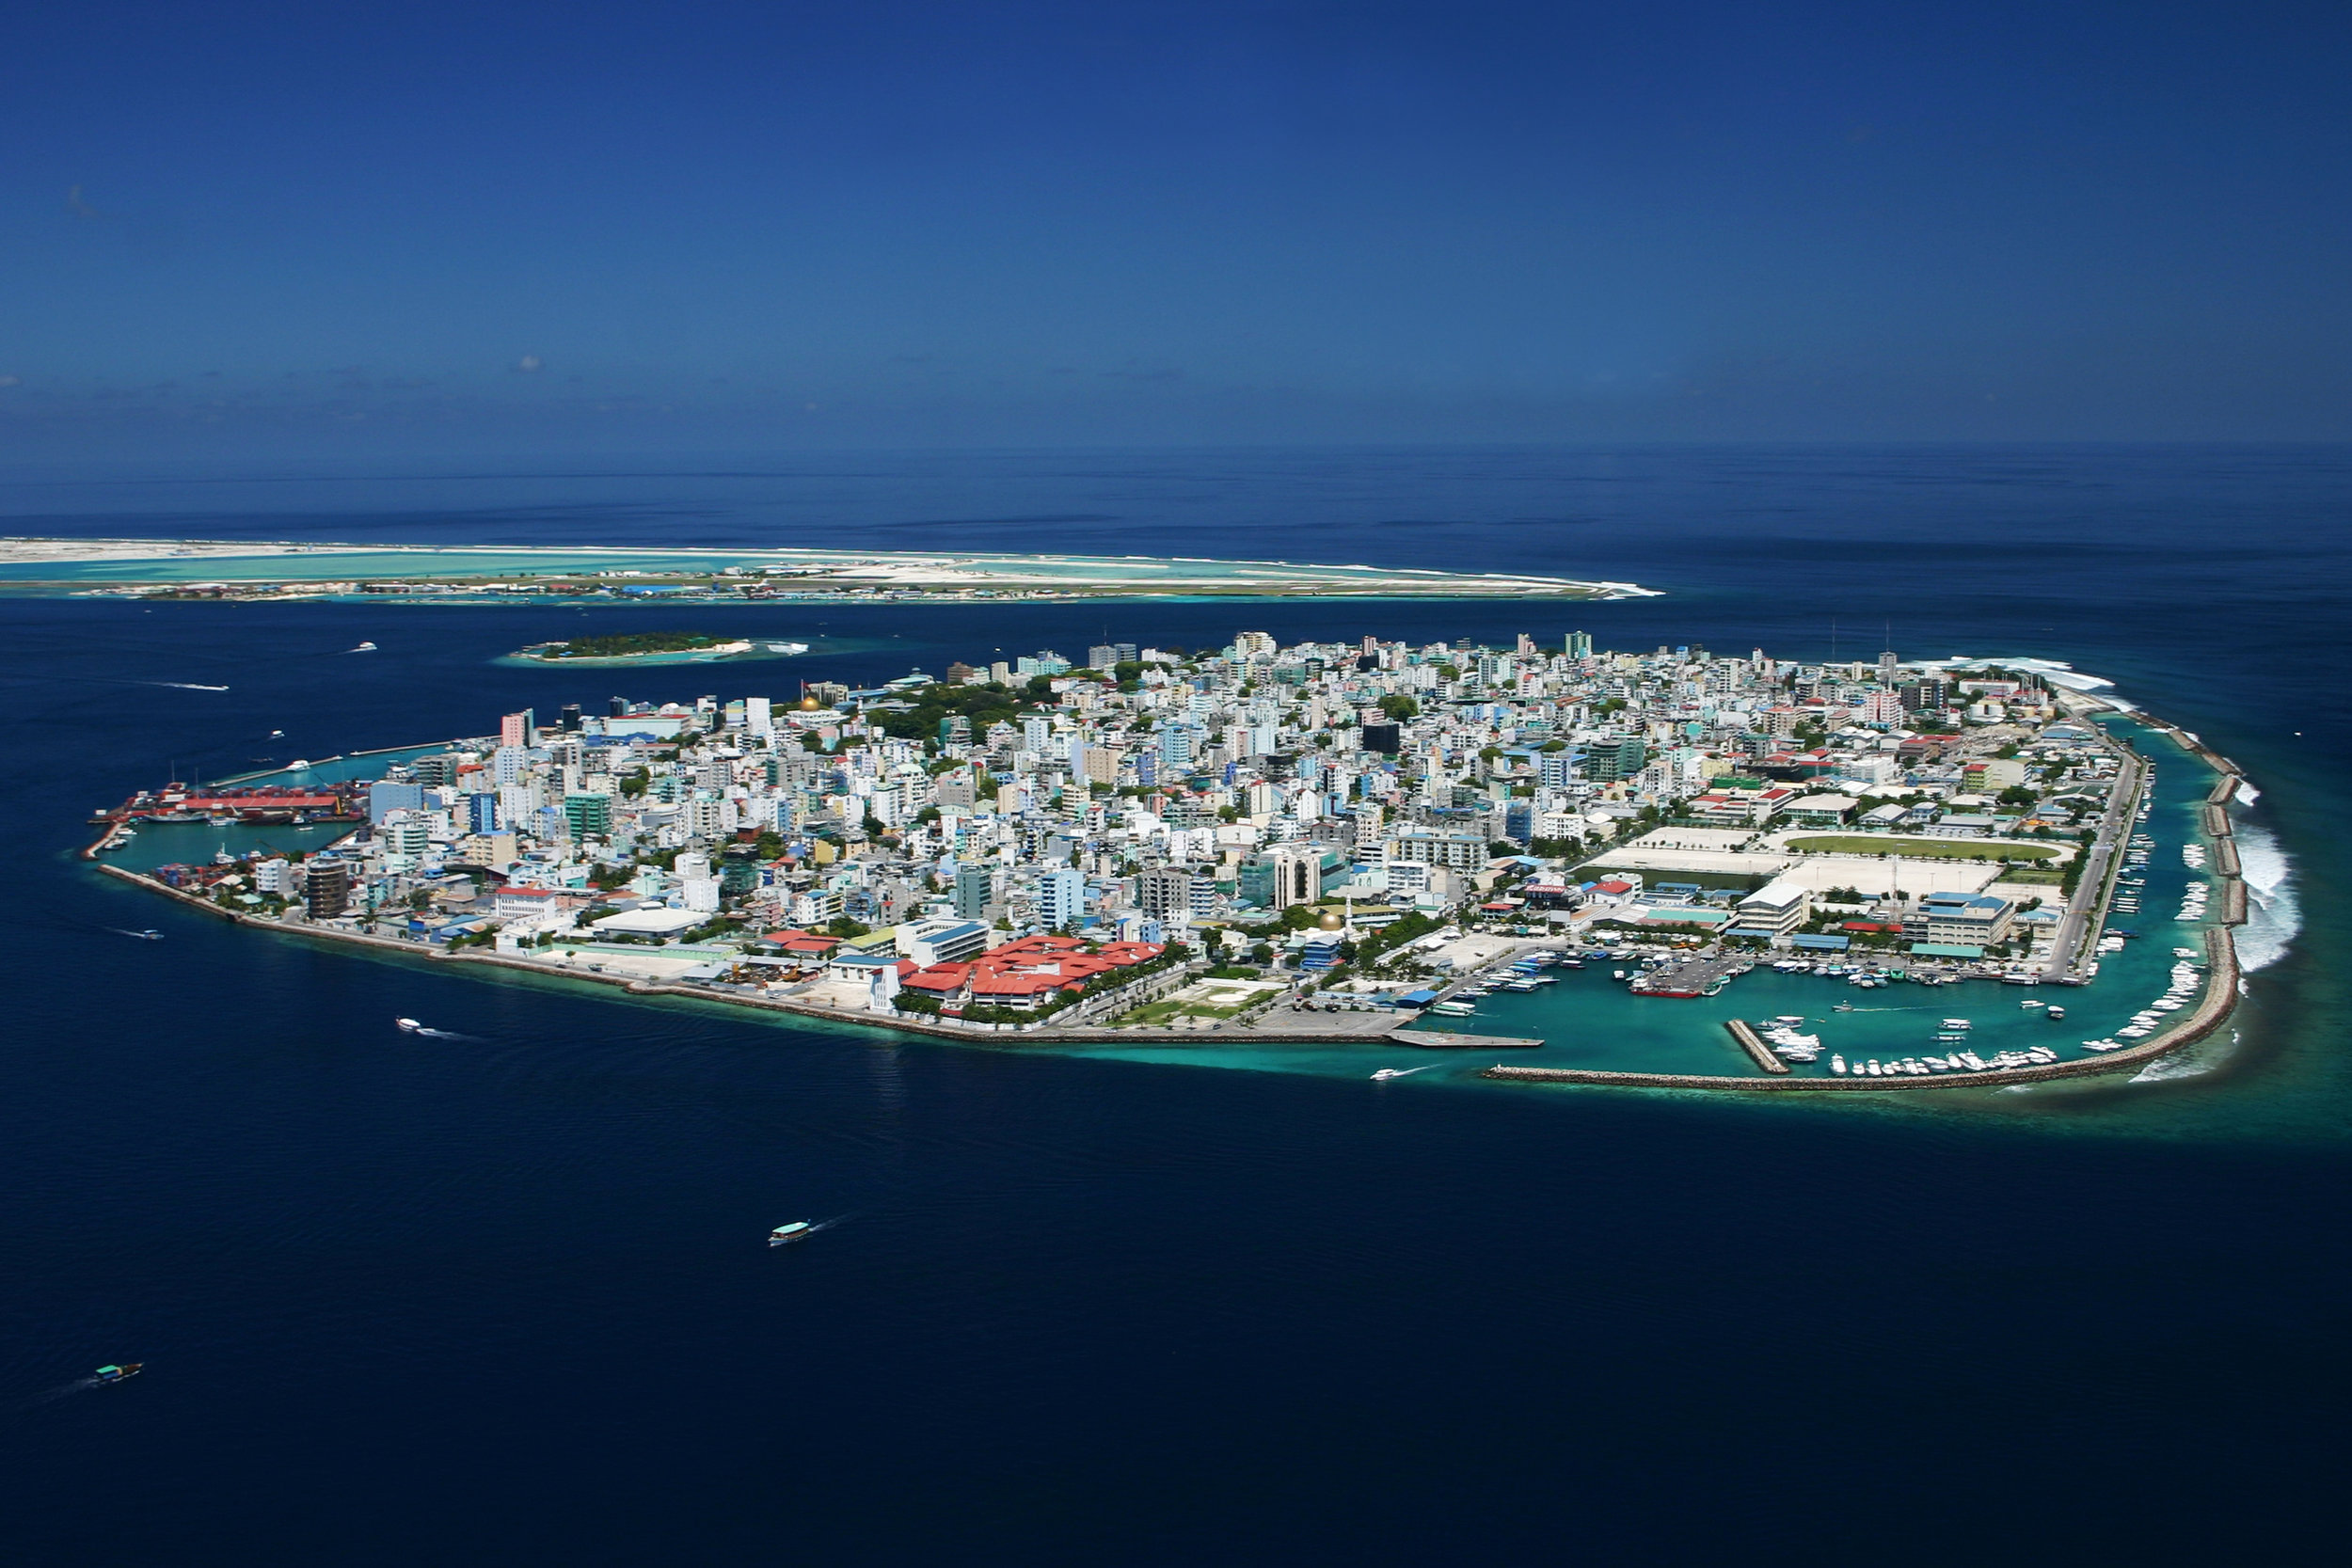 Climate Change and Migration in Maldives — Georgetown Journal of  International Affairs